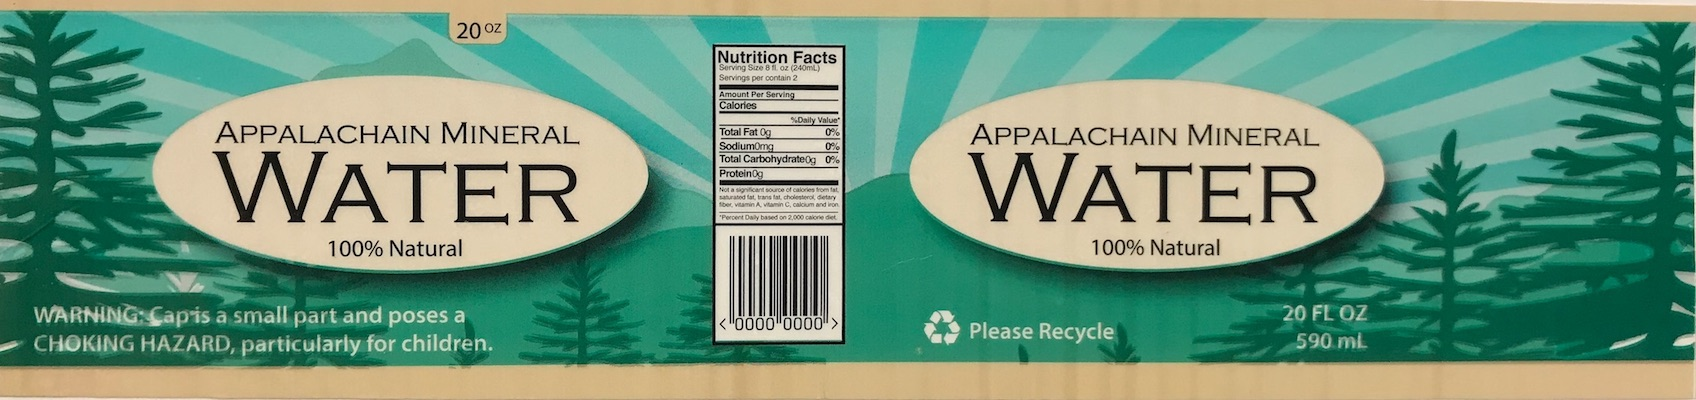 Appalachian Mineral Water Wrapper printed by Clemson University